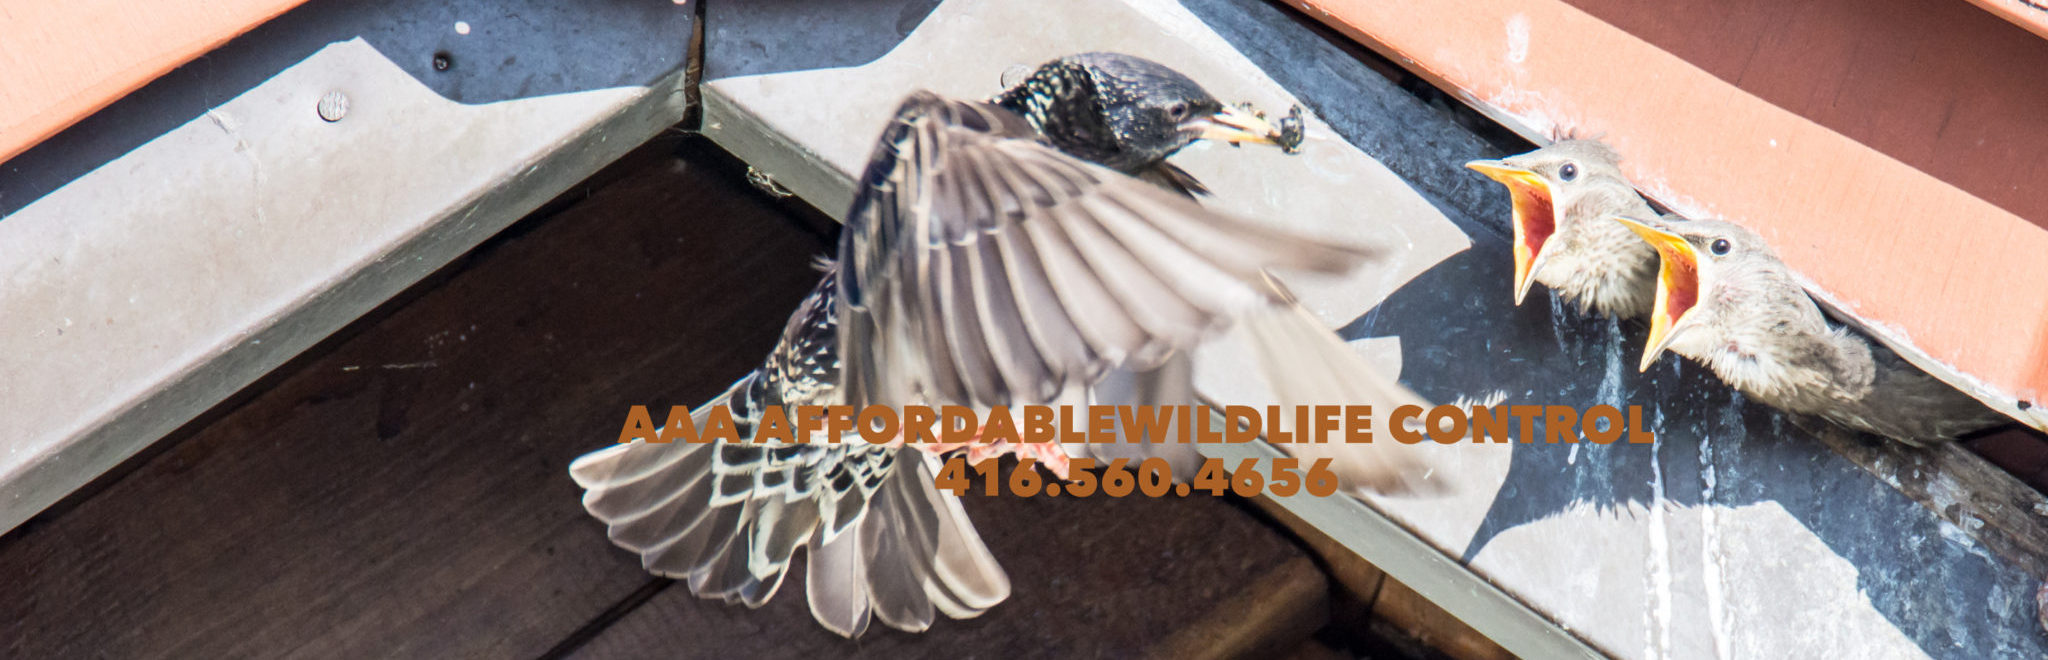 Bird Removal Toronto, Bird Nest Removal Toronto, Bird Nest Removal From Wall Vent